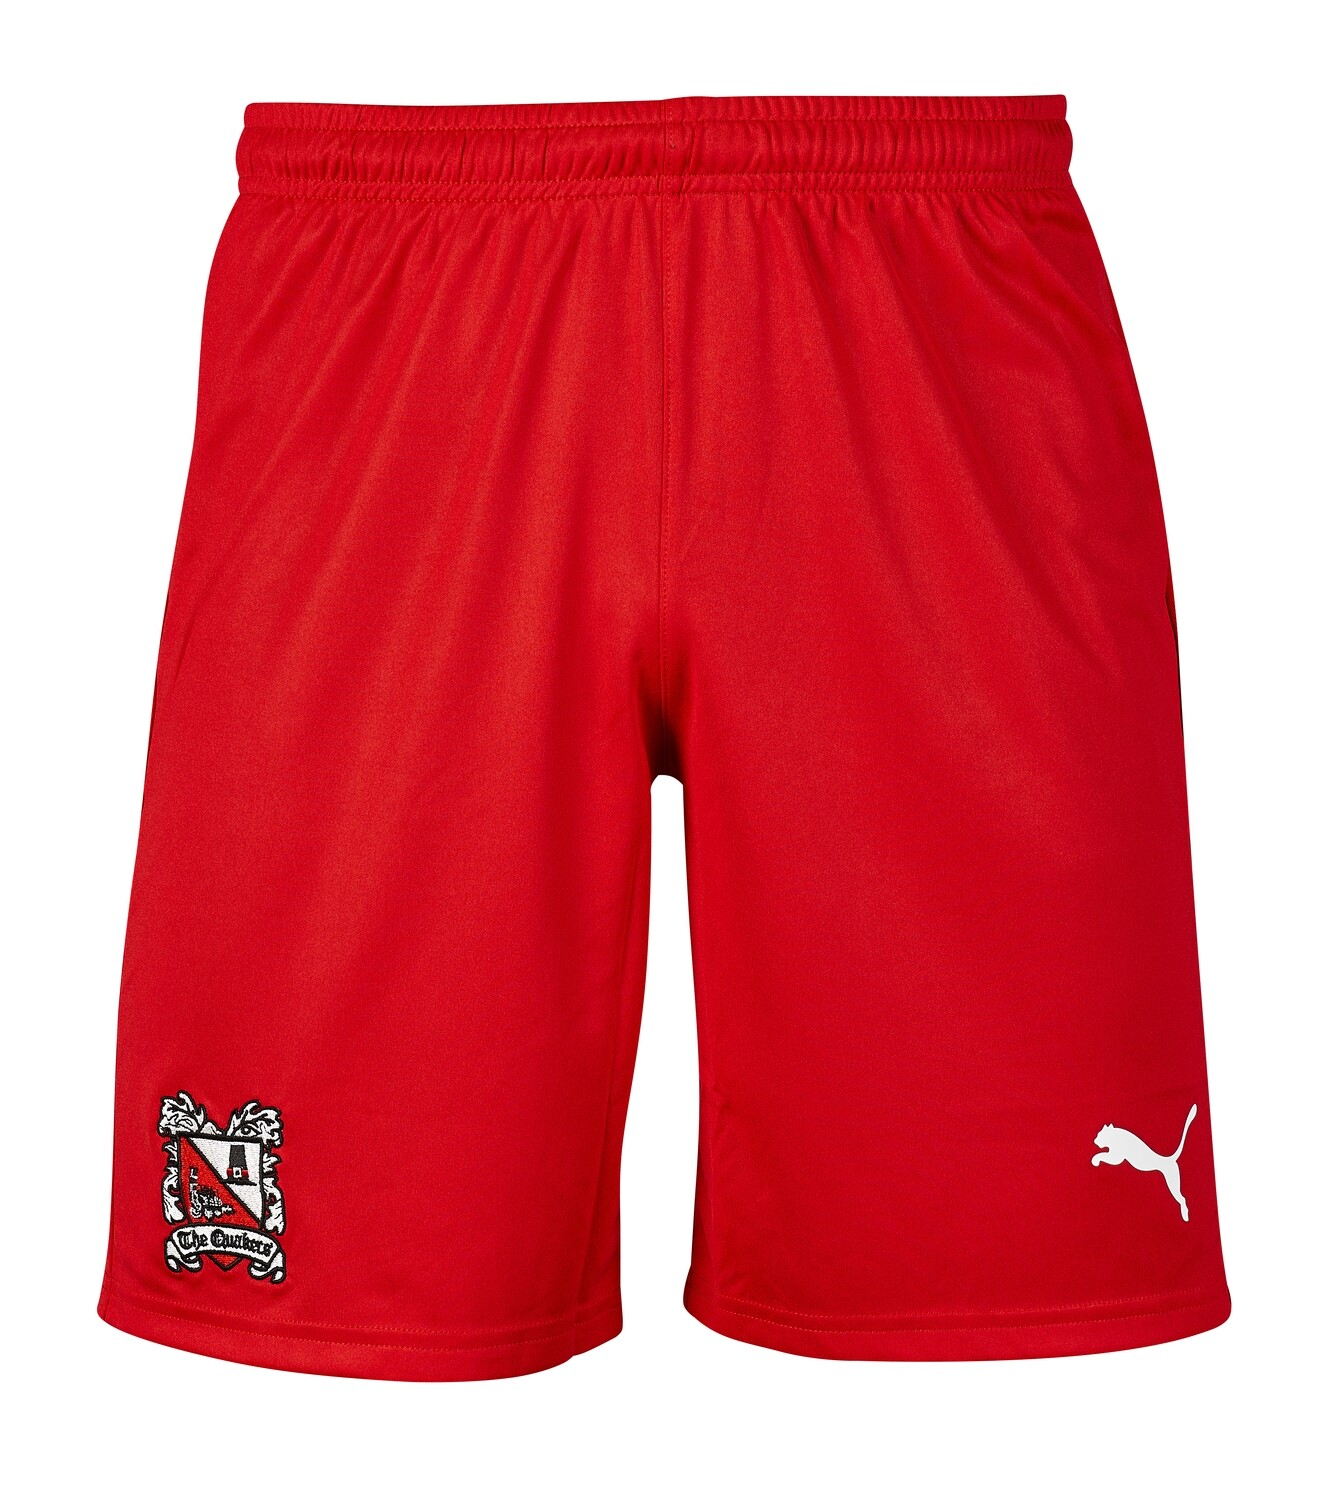 Puma Away Shorts 19/20 Adult